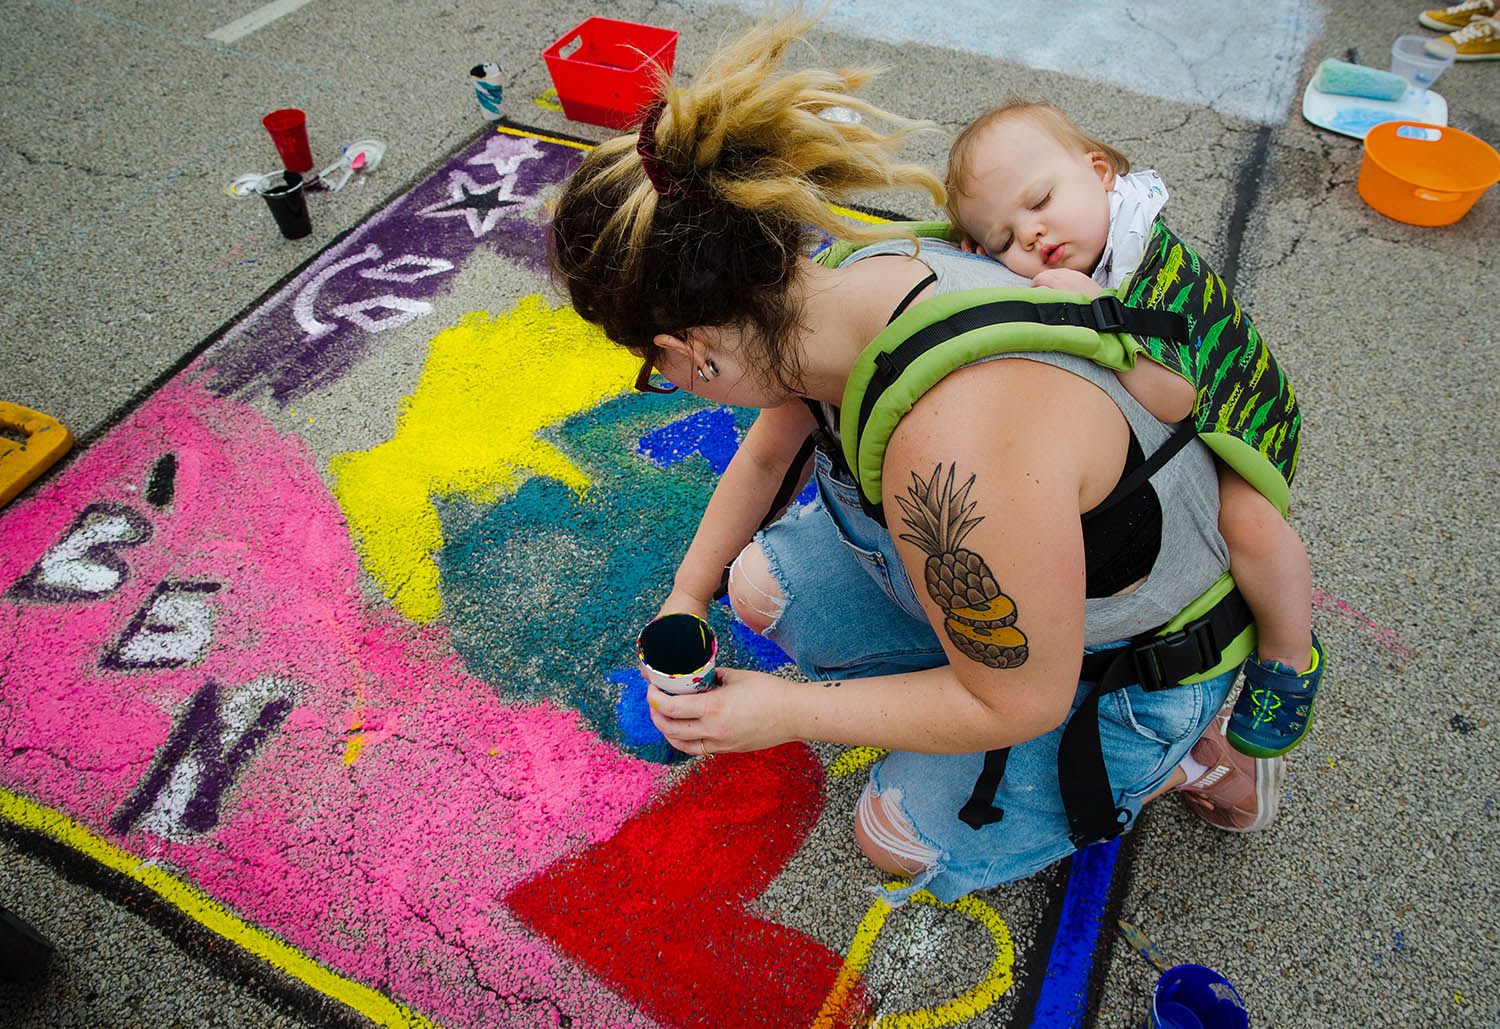 Rachel Morrison's one-year-old son Benjamin sleeps while nestled in a carrier on her back during the Springfield Art Association's 2019 Paint the Street event in downtown Springfield, Ill., Saturday, June 22, 2019. Morrison said painting was much harder while carrying her 20-pound son. [Ted Schurter/The State Journal-Register]